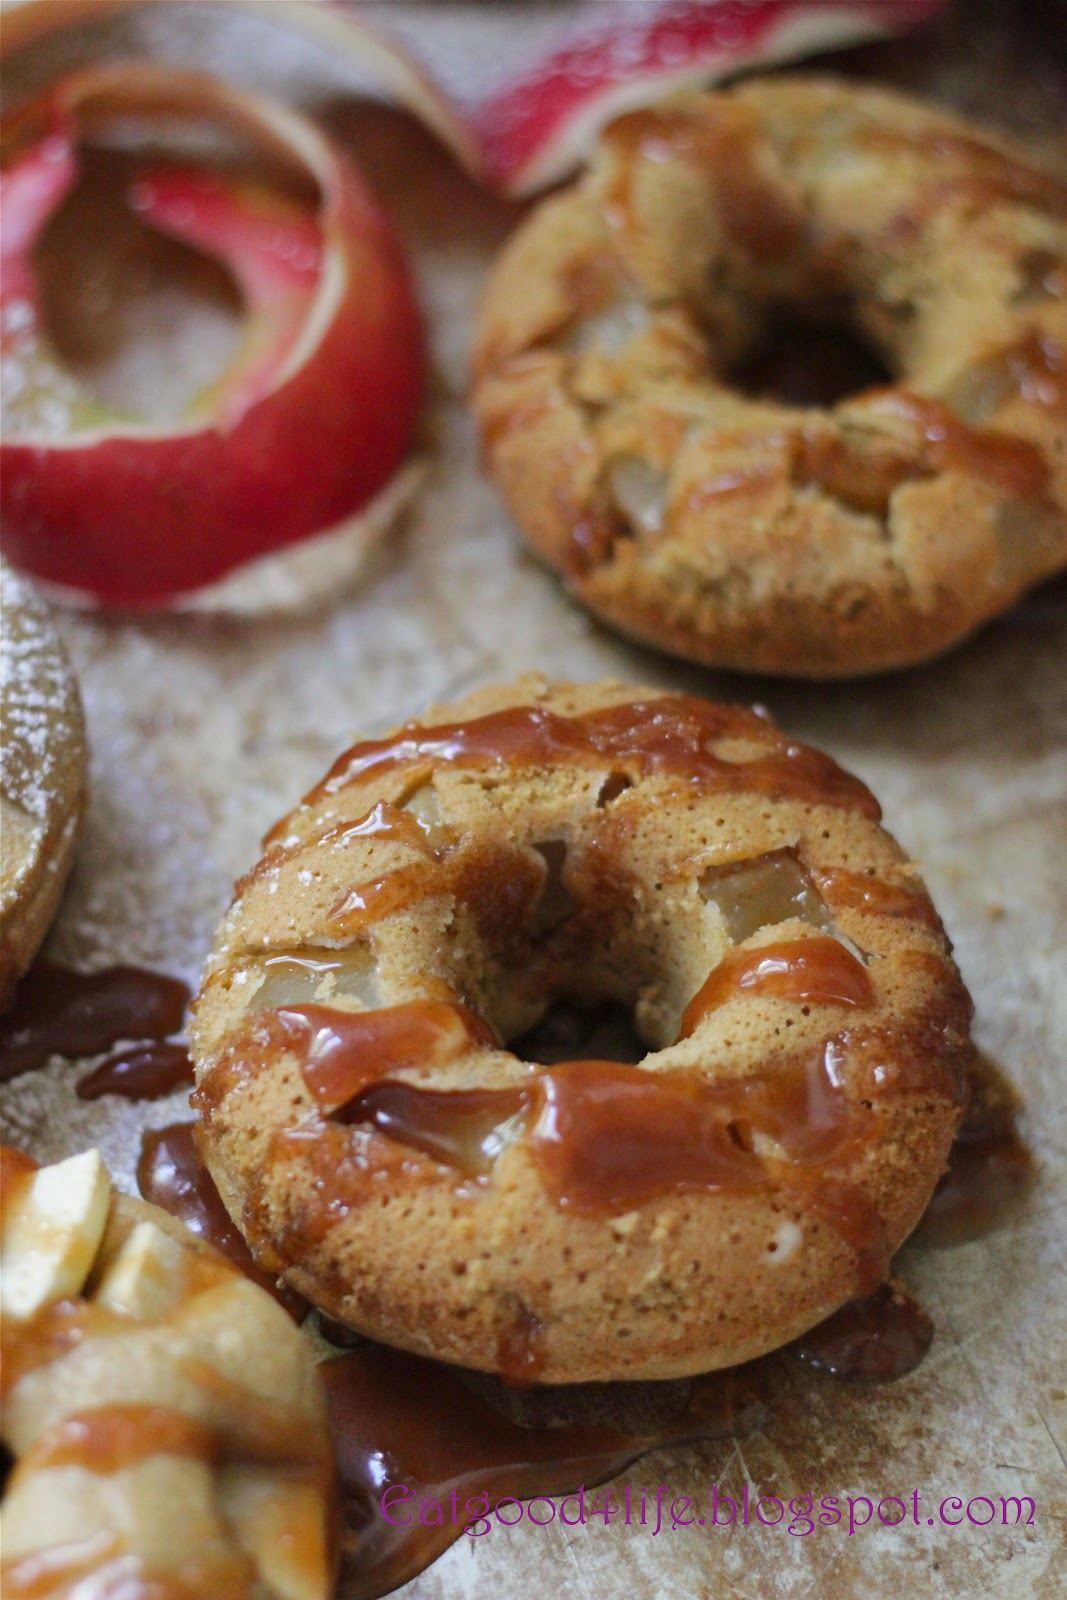 Baked Apple And Caramel Rustic Donuts Eat Good 4 Life